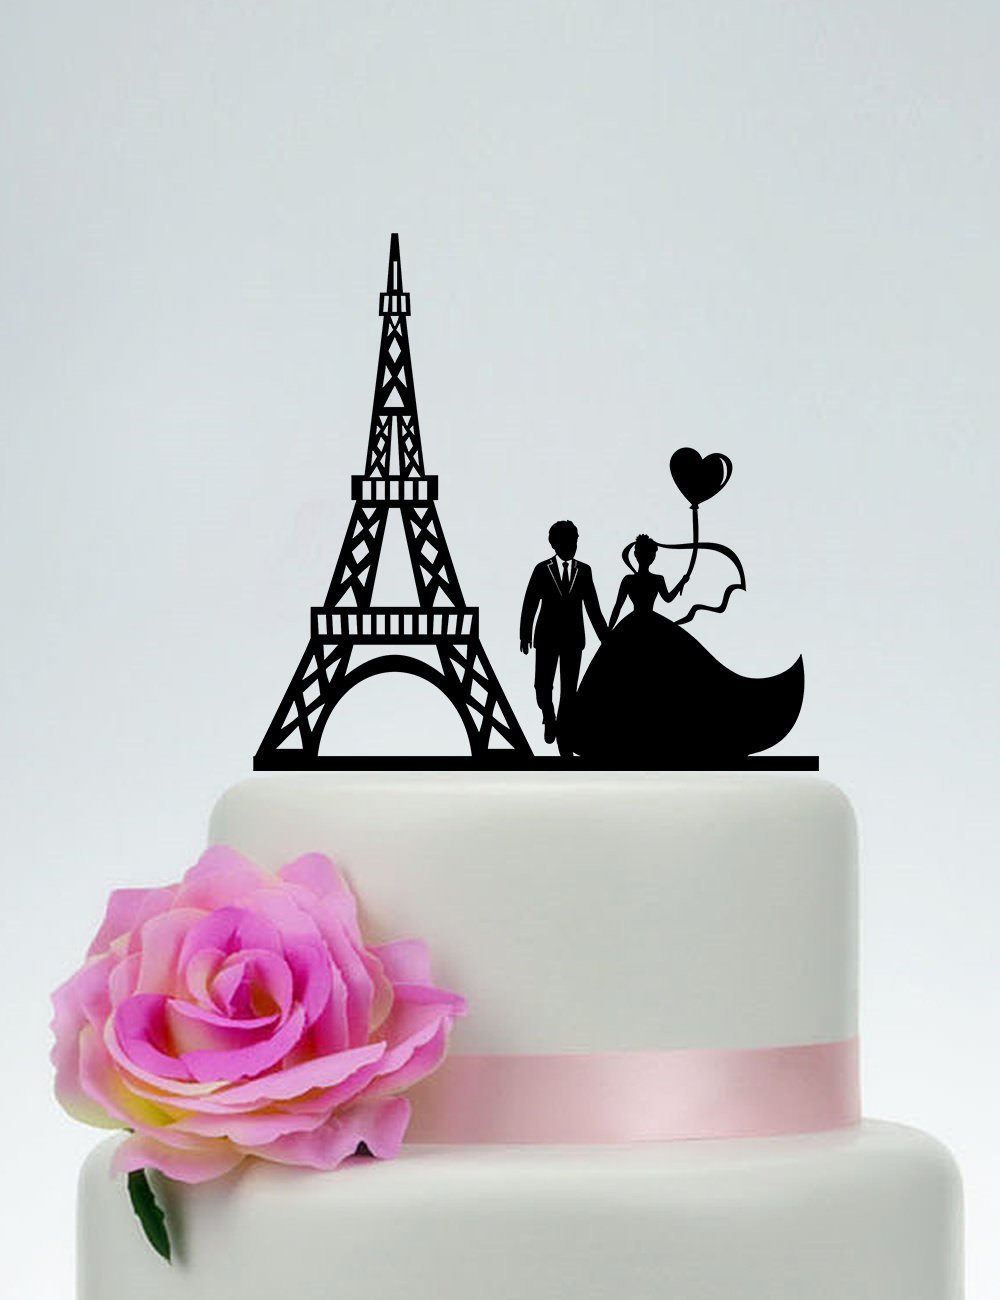 Wedding Cake Topper Eiffel Tower Groom And Bride Love Custom Paris Paris Silhouette Cake Topper For Wedding Anniversary Gifts Wedding Party Favors Cake Toppers